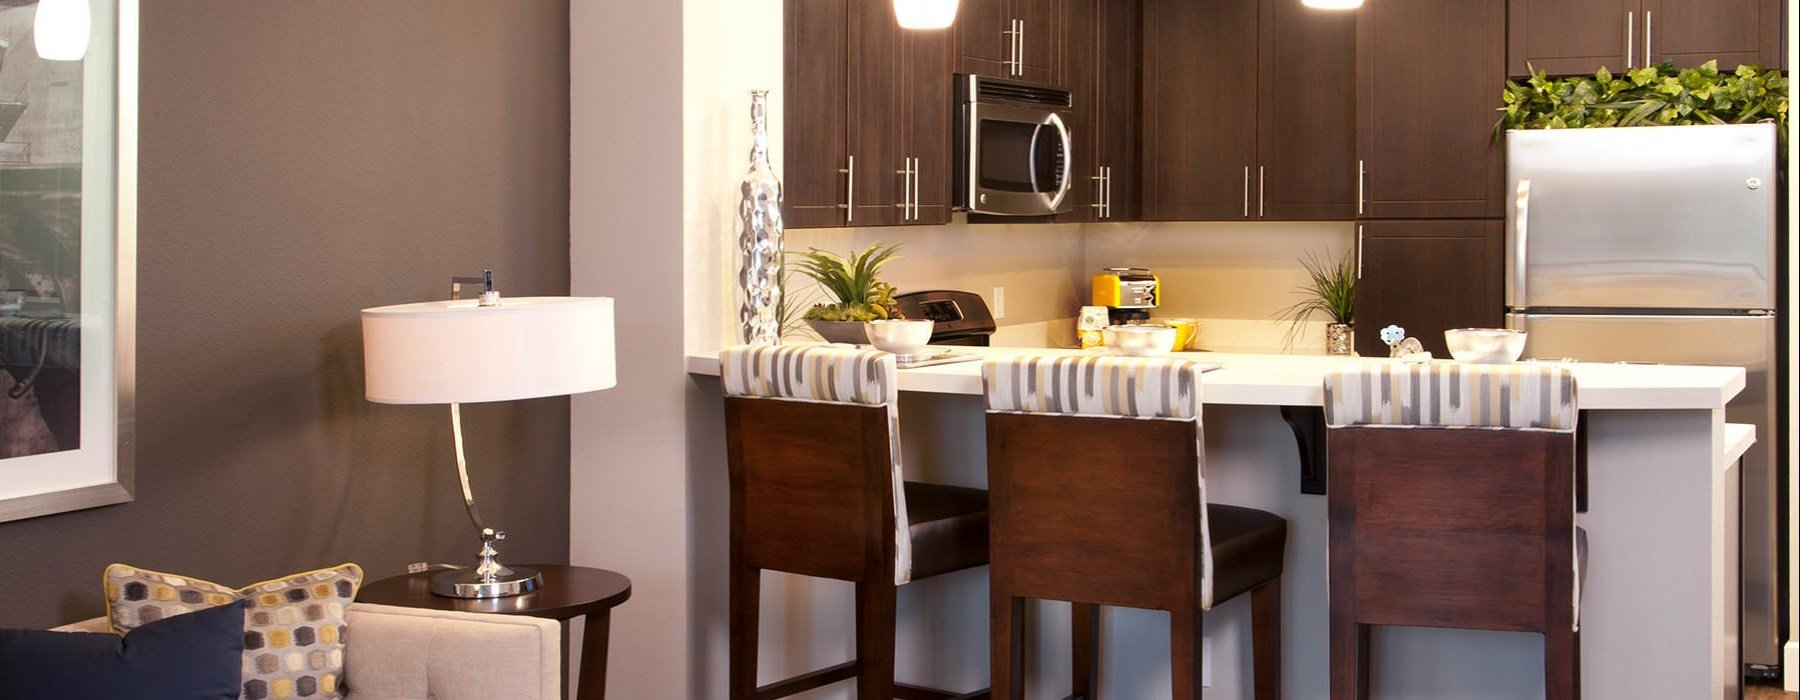 Best A1 Luxury 1 2 And 3 Bedroom Apartments In San Diego Ca With Pictures